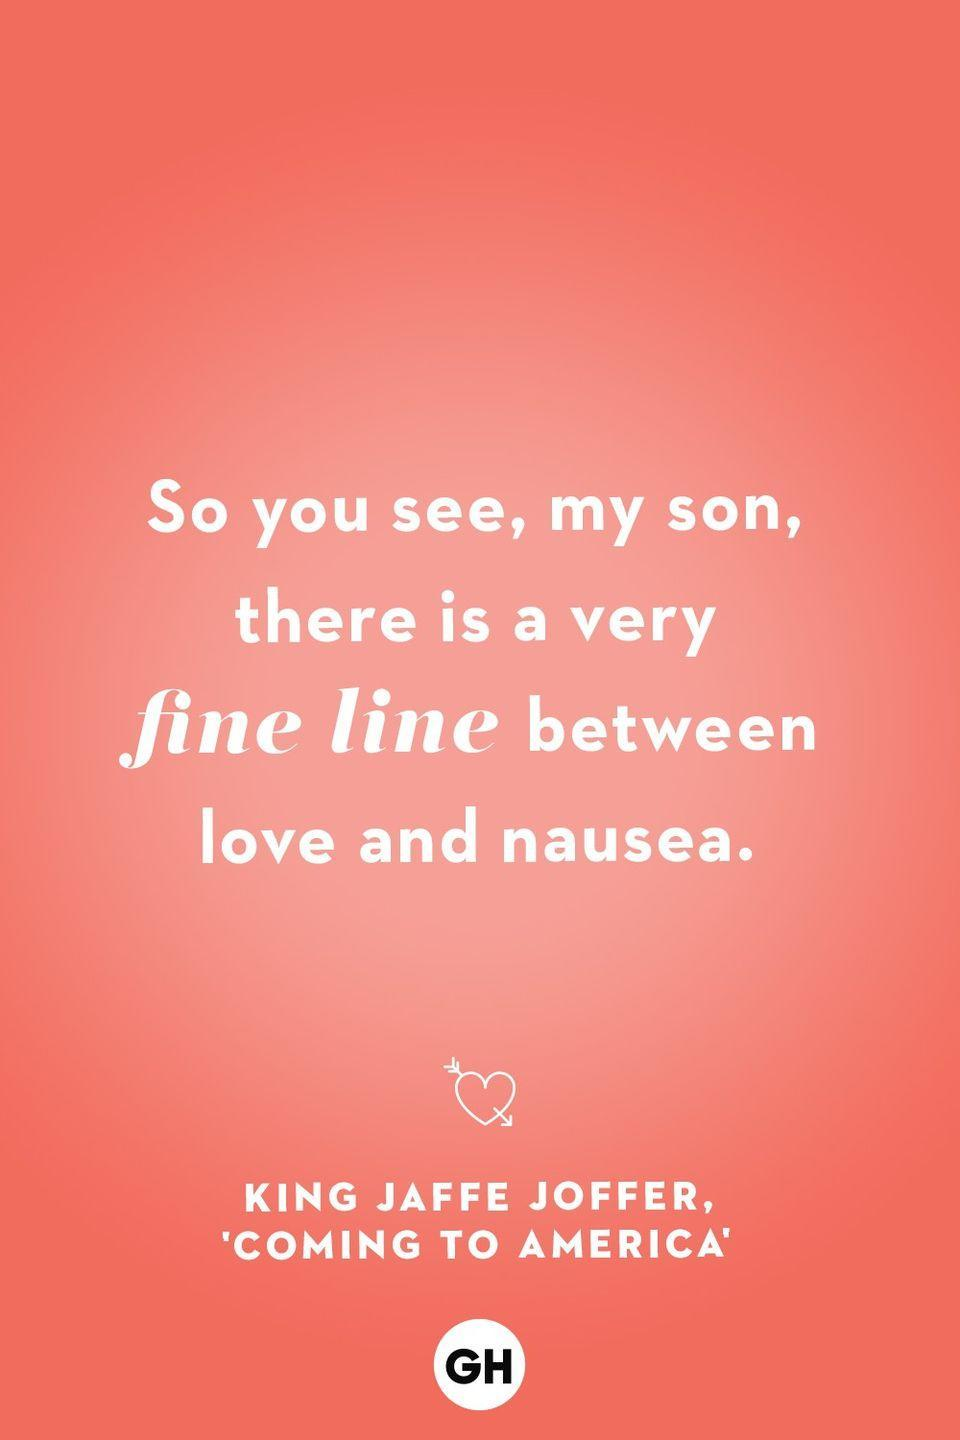 <p>So you see, my son, there is a very fine line between love and nausea.</p>